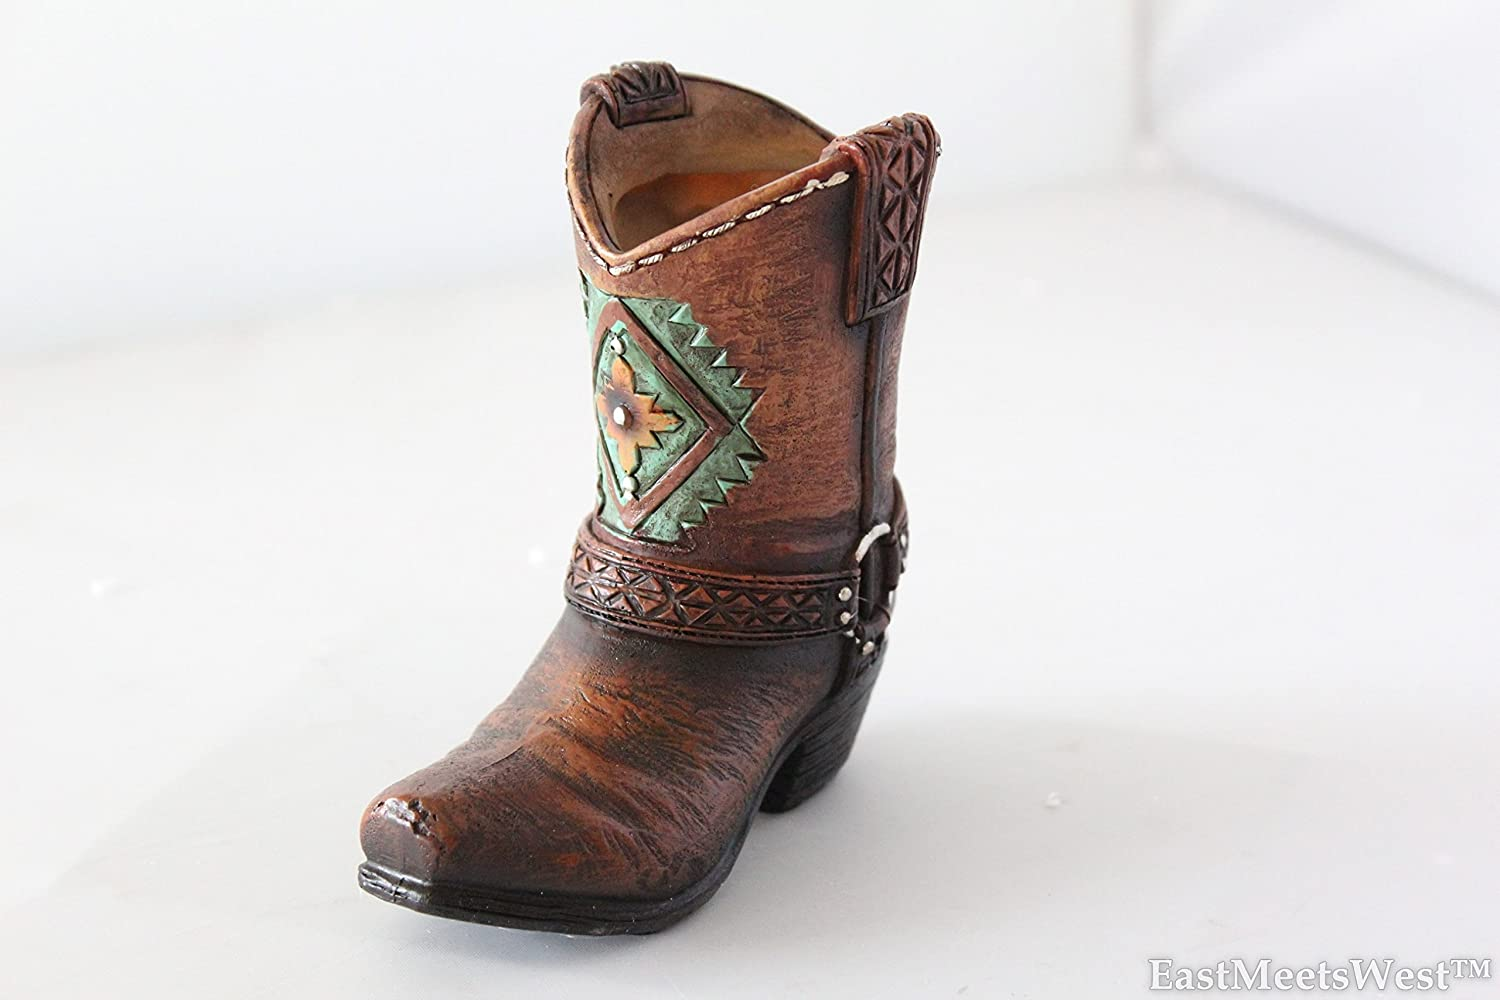 Mini Western Cowboy Cowgirl Turquoise Flower Boot Toothpick Pen Holder Vase Rustic Decoration Rainbow